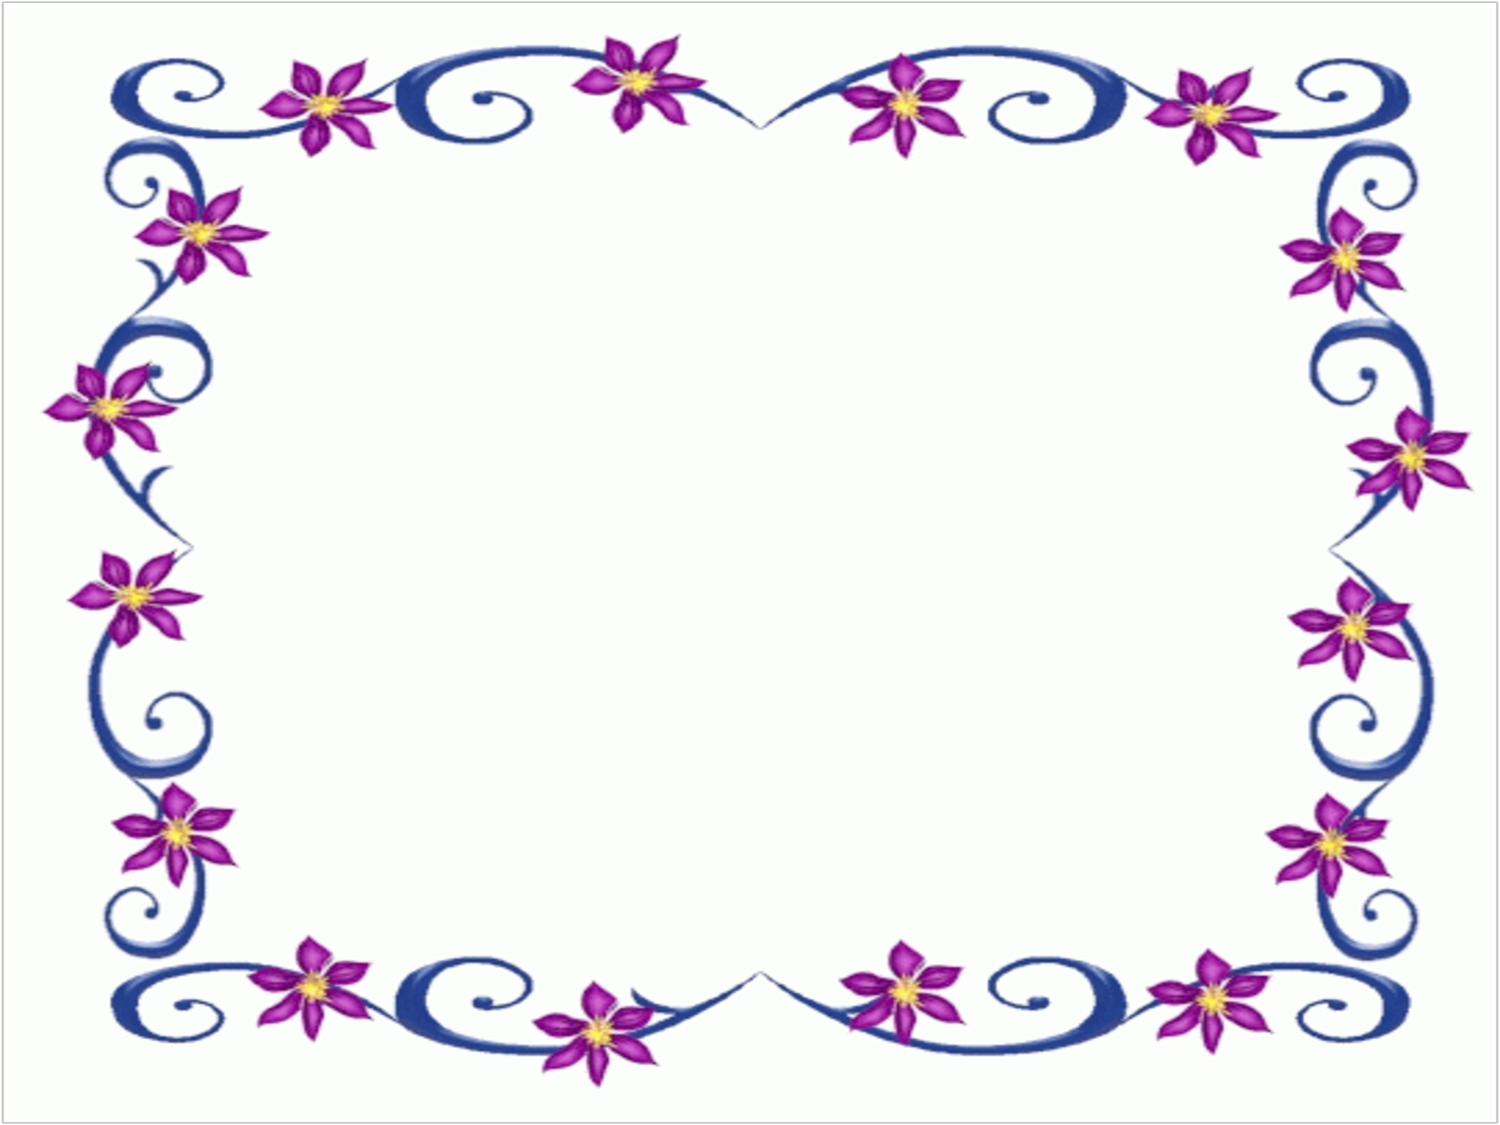 Certificate Borders Templates - ClipArt Best